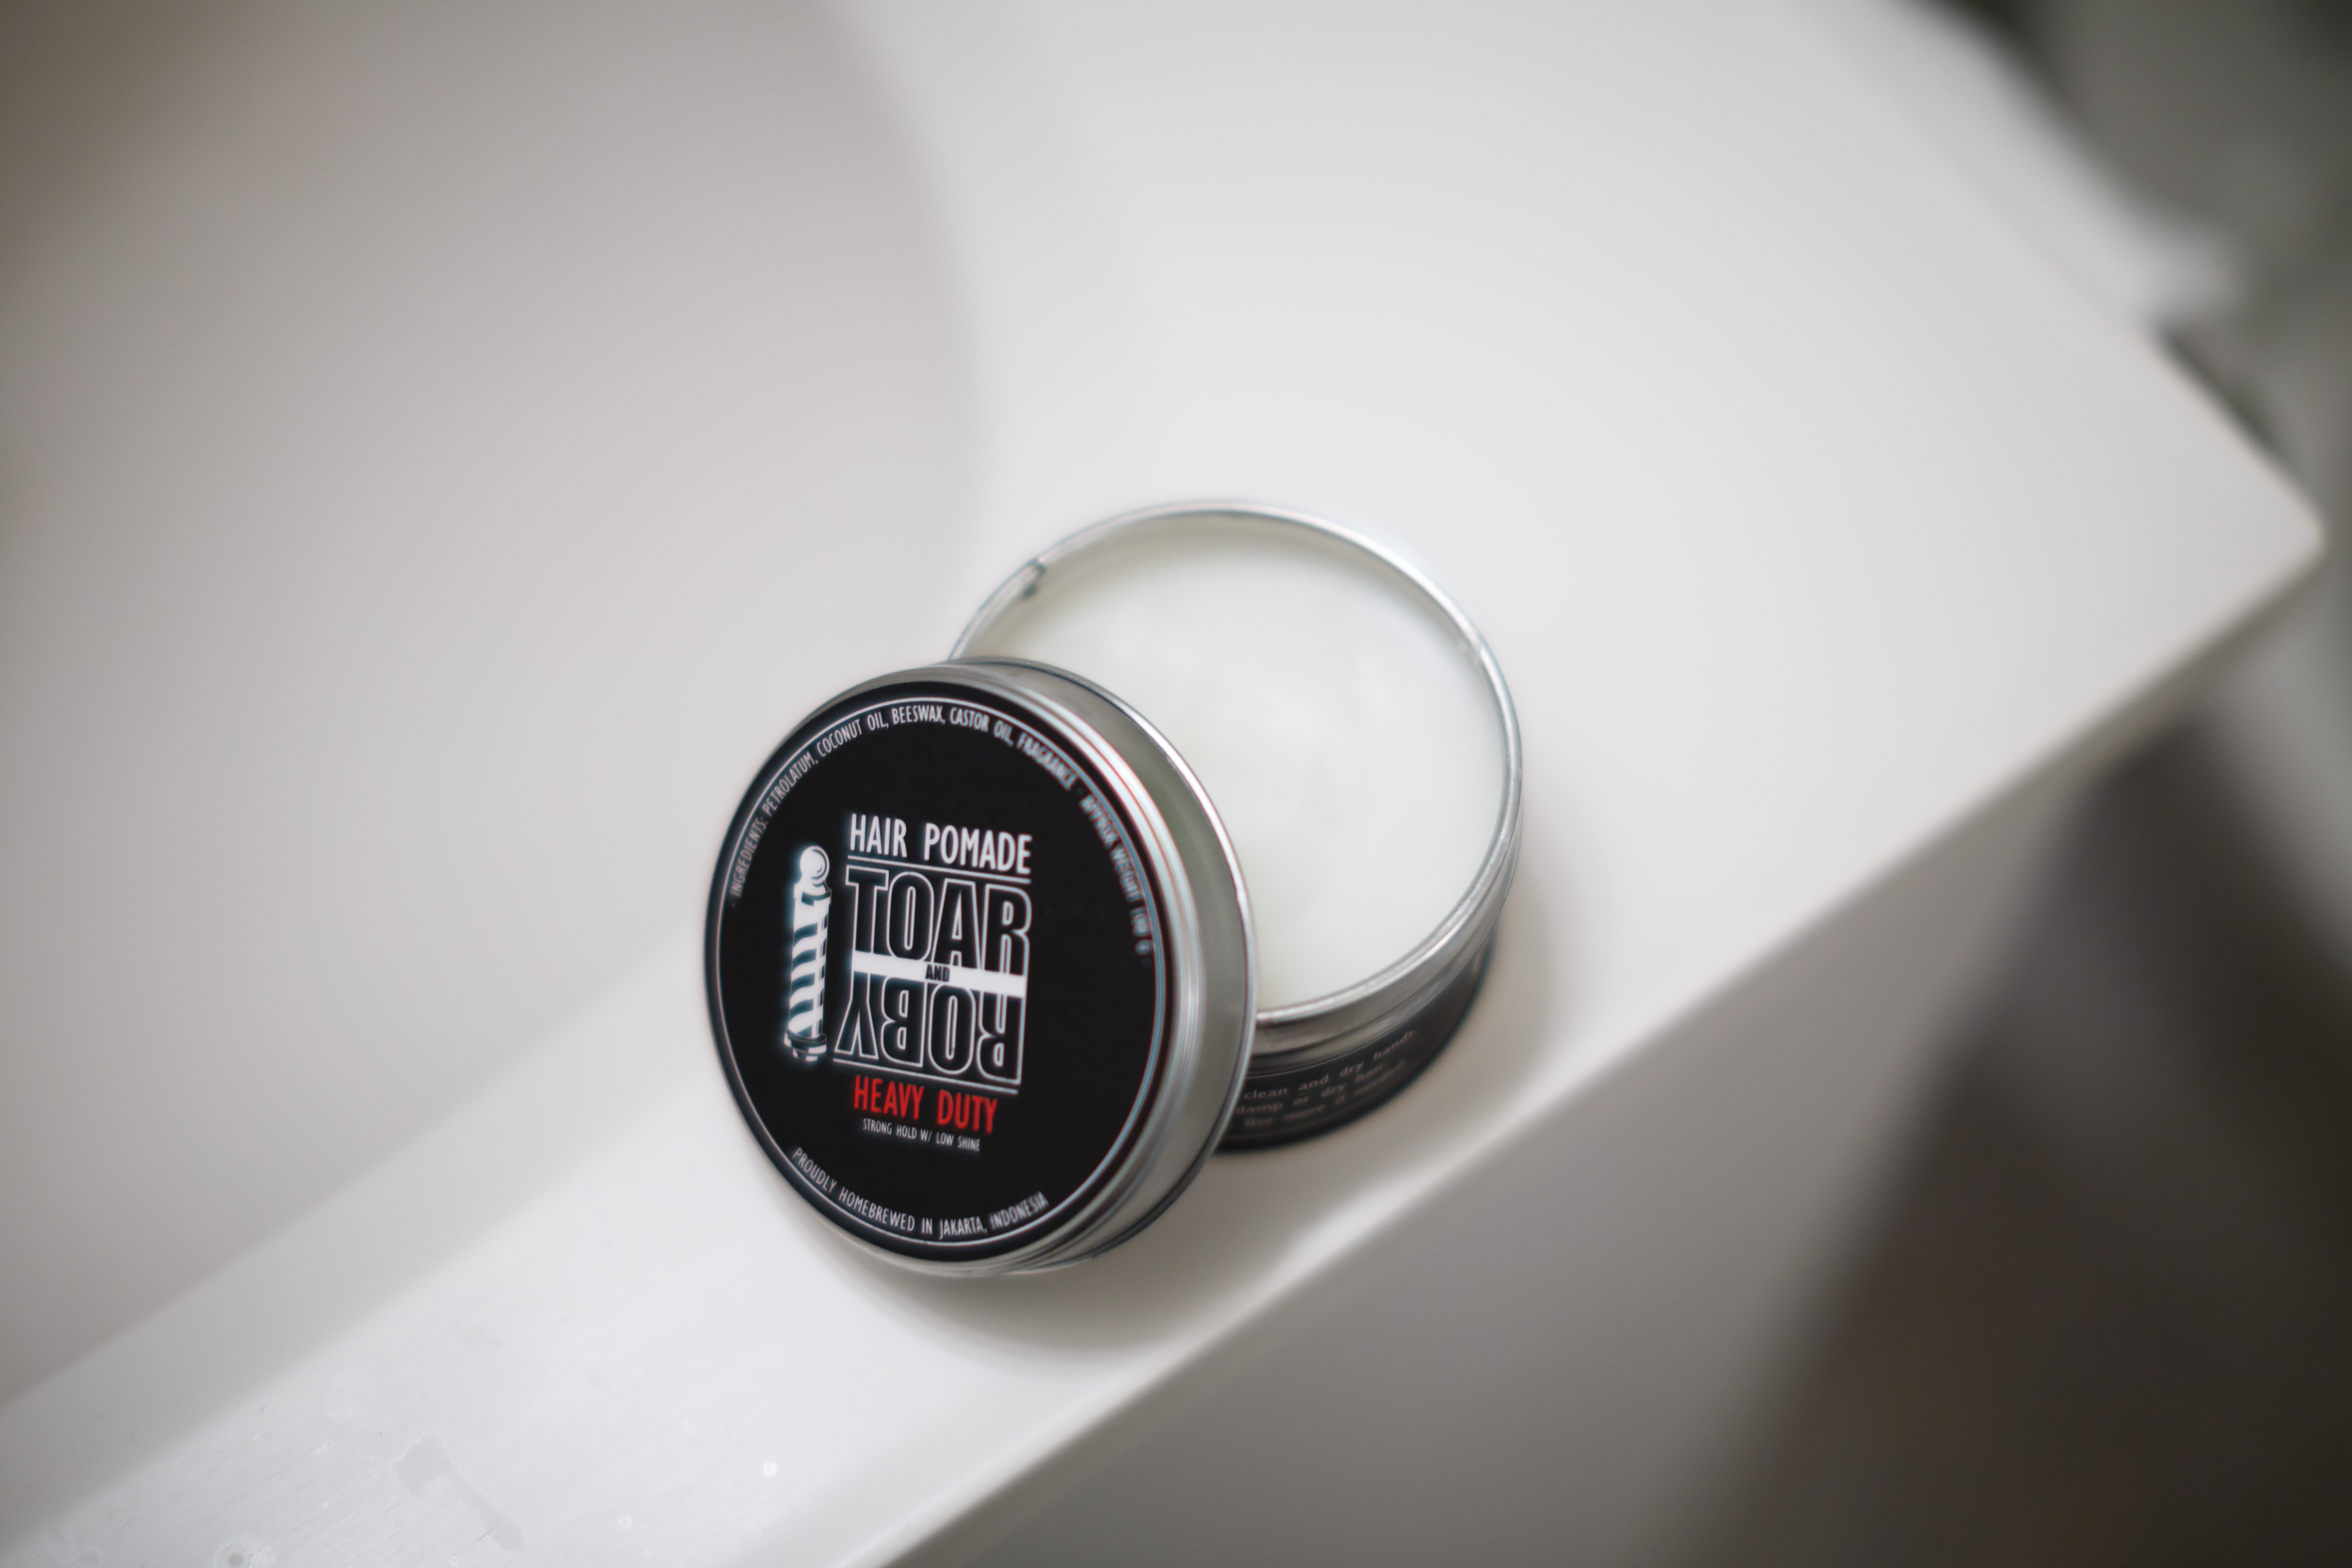 Toar and Roby Hair Pomade Heavy Hard Strong Firm Hold Pomp Pompadour Hair  Hairstyle Indonesia Indonesian